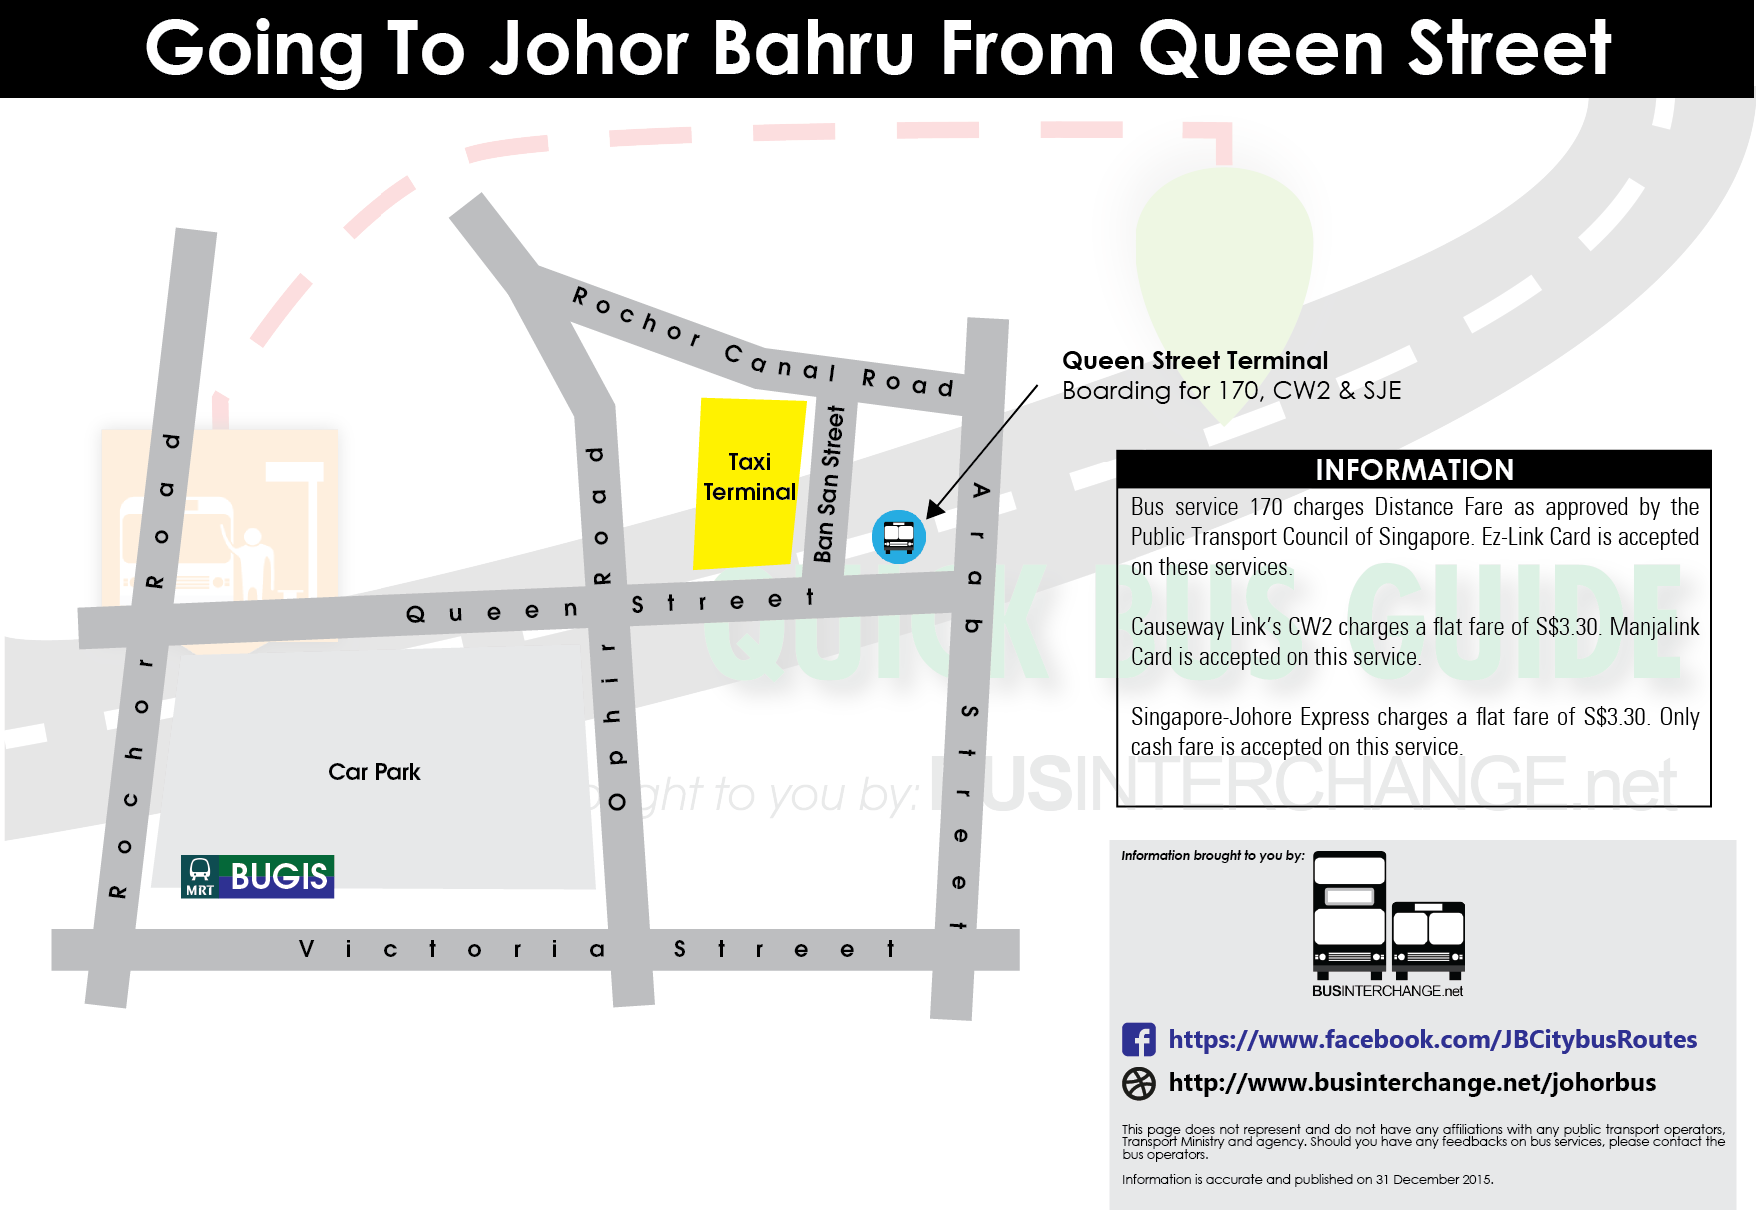 Boarding point for 170, CW2 and Singapore-Johore Express at Queen Street Terminal